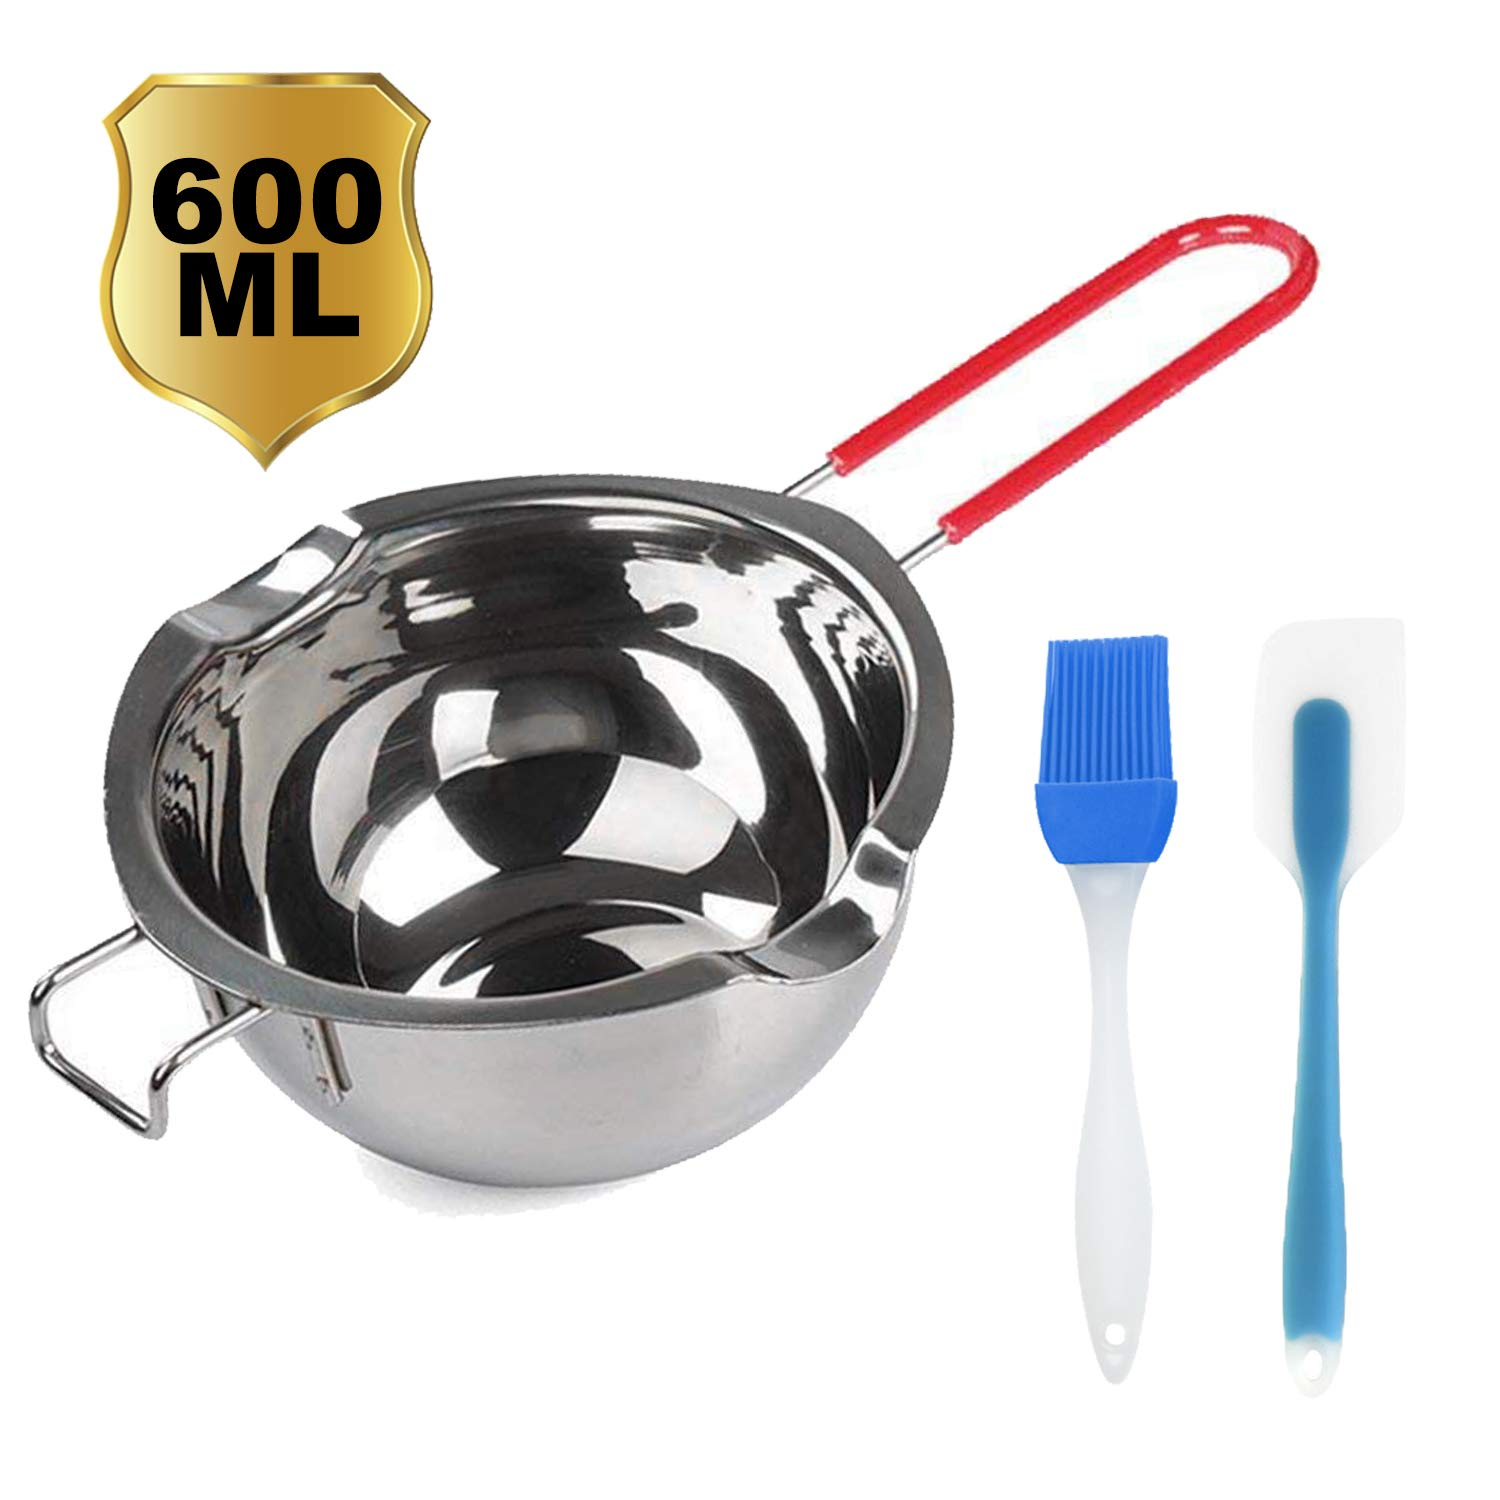 3Pack Stainless Steel Double Boiler Pot with Heat Resistant Handle for Melting Chocolate, Butter, Cheese, Caramel and Candy - 18/8 Steel Melting Pot, 2 Cup Capacity with Silicone Scraper and brush by Uonoceh